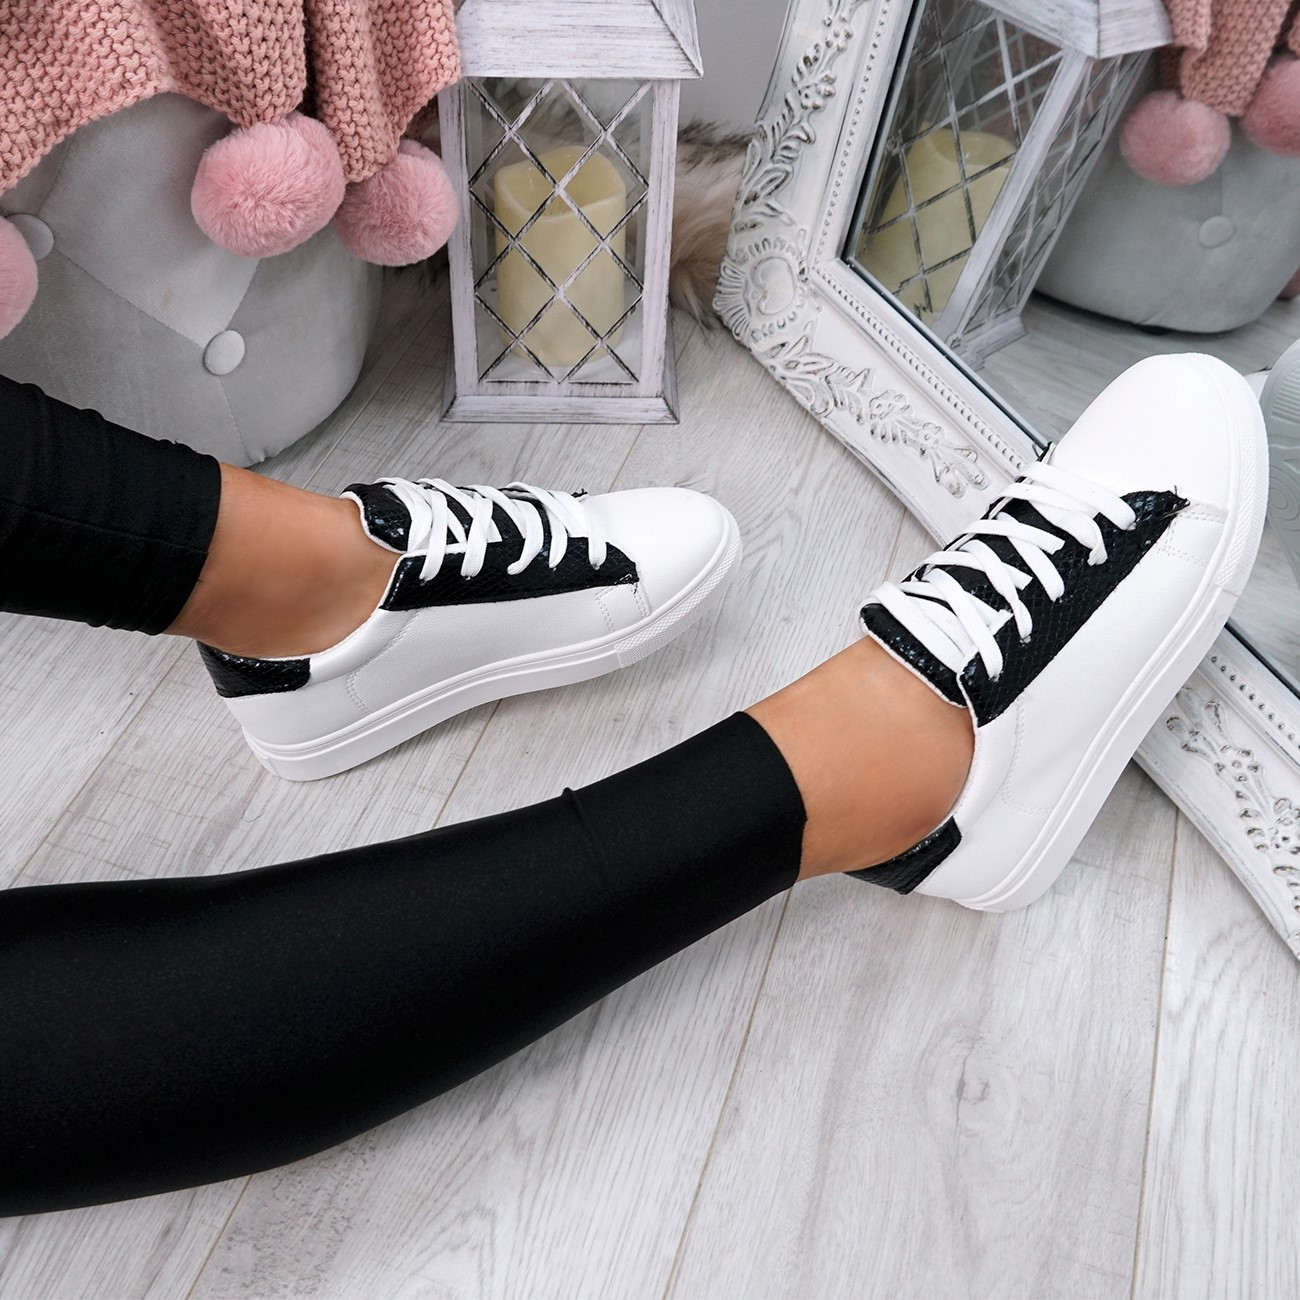 WOMENS-LADIES-SNAKE-SKIN-GLITTER-LACE-UP-TRAINERS-PLIMSOLLS-SNEAKERS-SHOES thumbnail 8